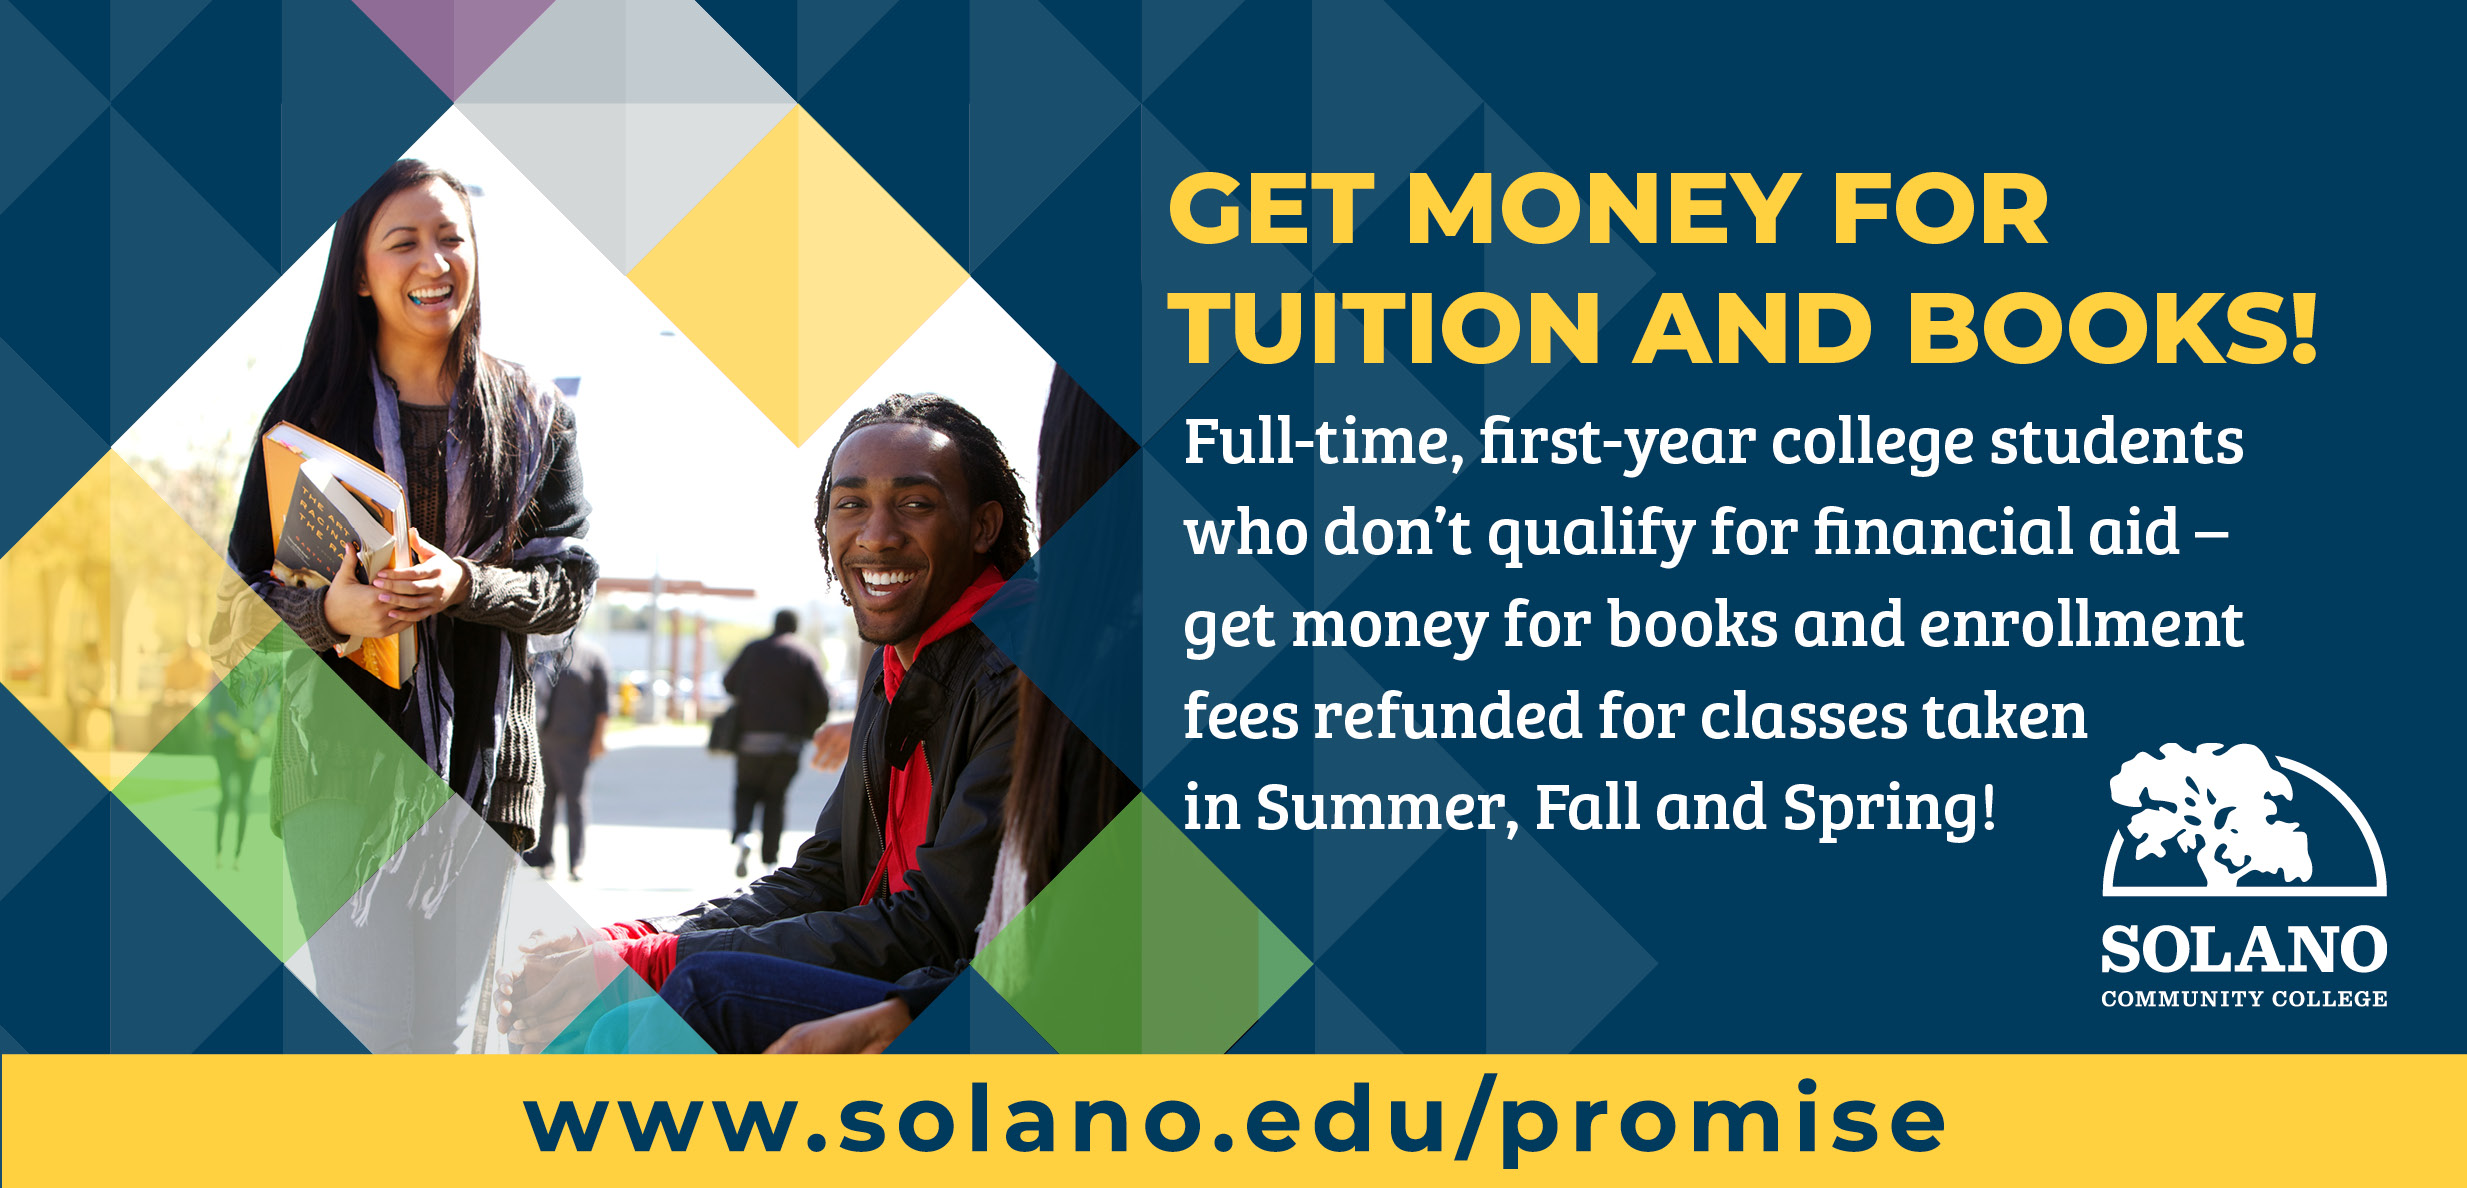 Get money for tuition and books! Full-time, first-year college students who don't qualify for financial aid - get money for books and enrollment fees refunded for classes taken in the Summer, Fall and Sprind!